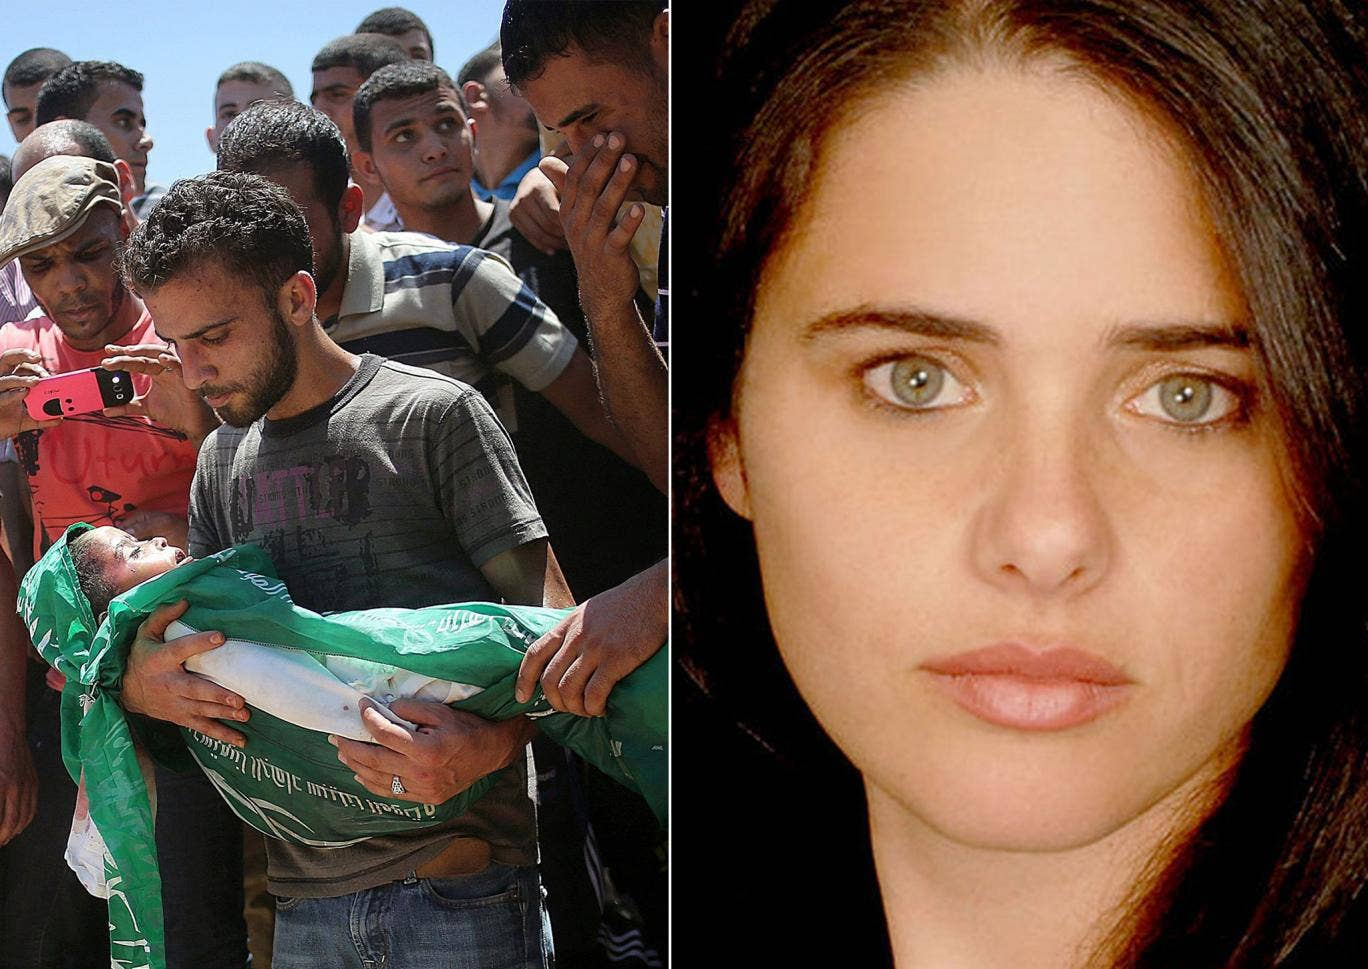 Left: Palestinians carry the body of three-year-old Mohammed Mnassrah; Right: Ayelet Shaked, a member of the Jewish Home party in Israel's Knesset